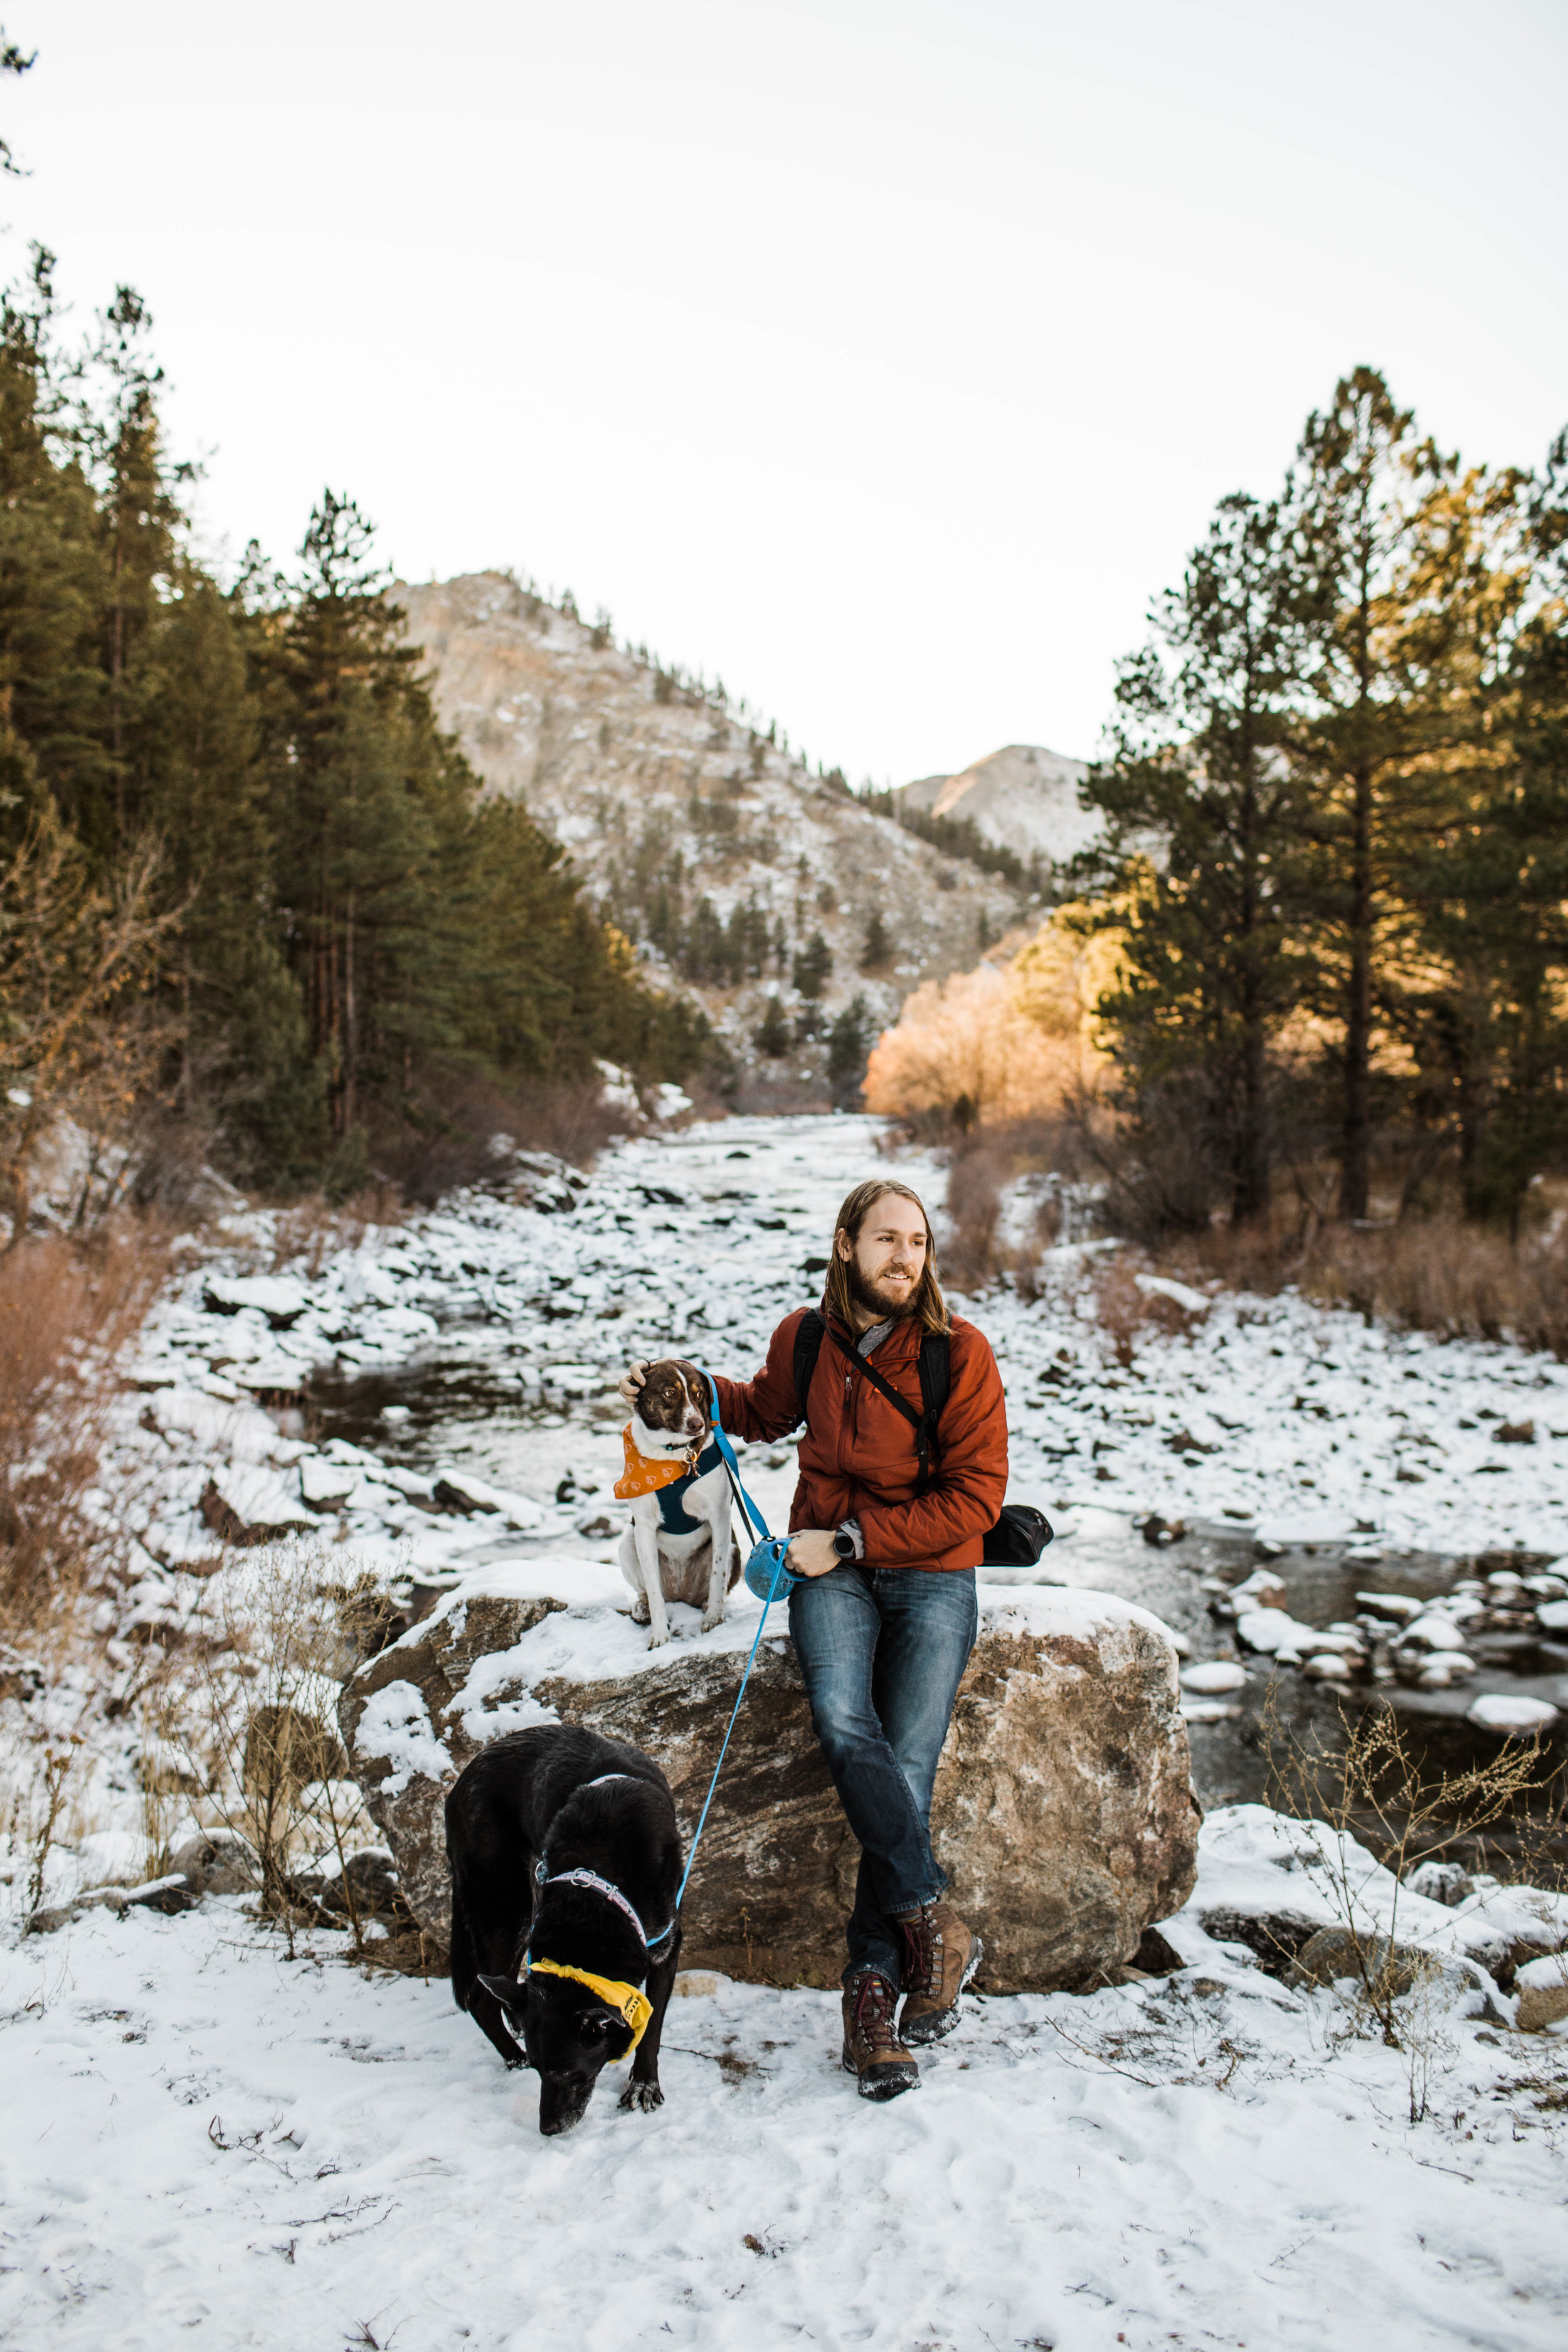 Sheena_Shahangian_Photography_Fort_Collins_Colorado_Rocky_Mountain_Adventure_Mountain_Session_Ed_Sheena-1.jpg